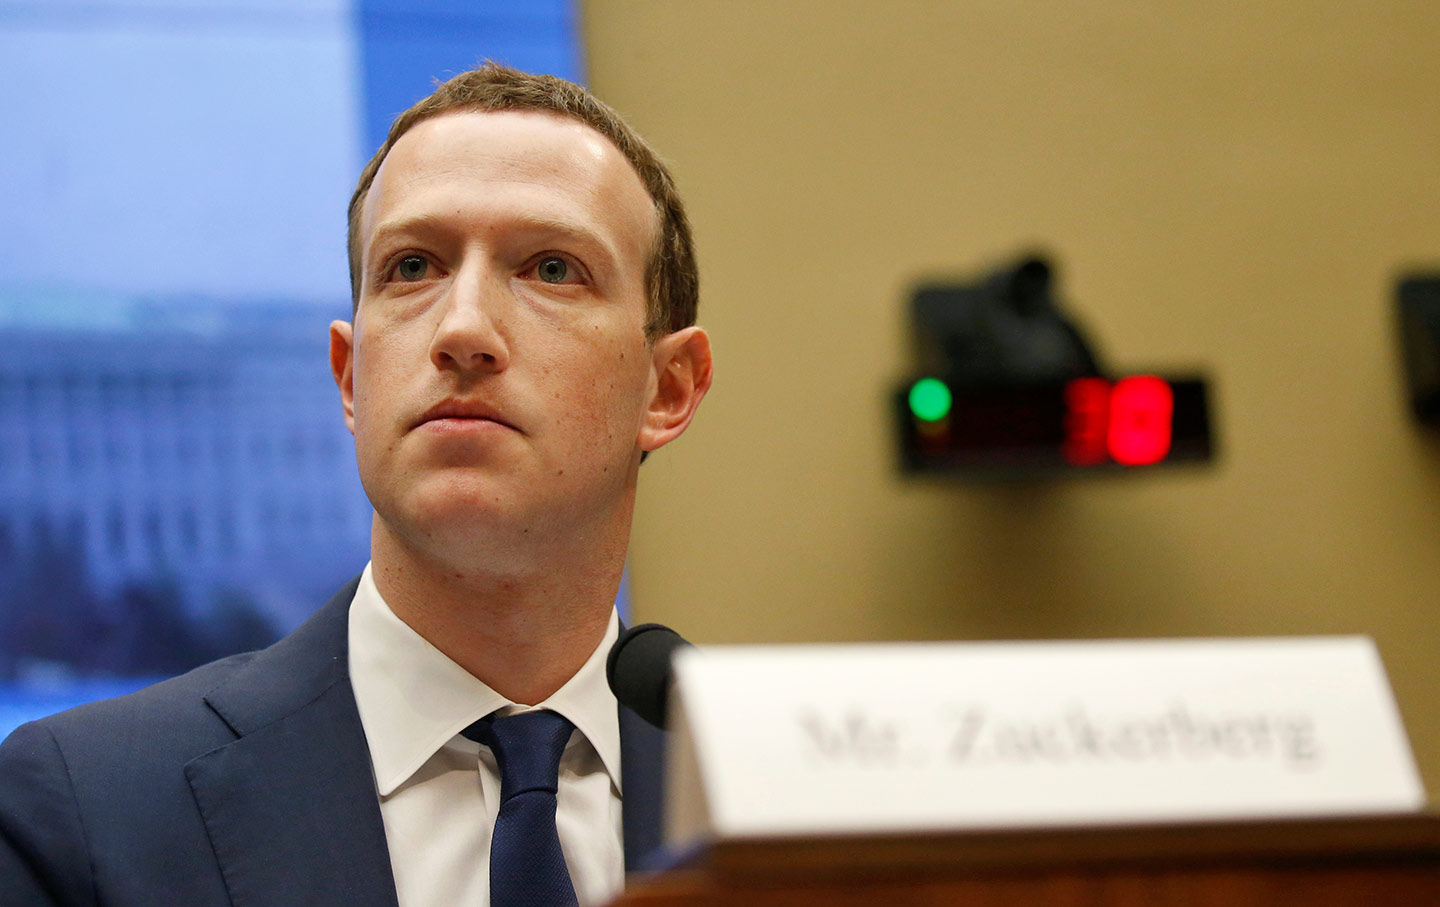 670a6f947bbf Facebook CEO Mark Zuckerberg testifies for a House Energy and Commerce  Committee hearing on Capitol Hill in Washington on April 11, 2018.